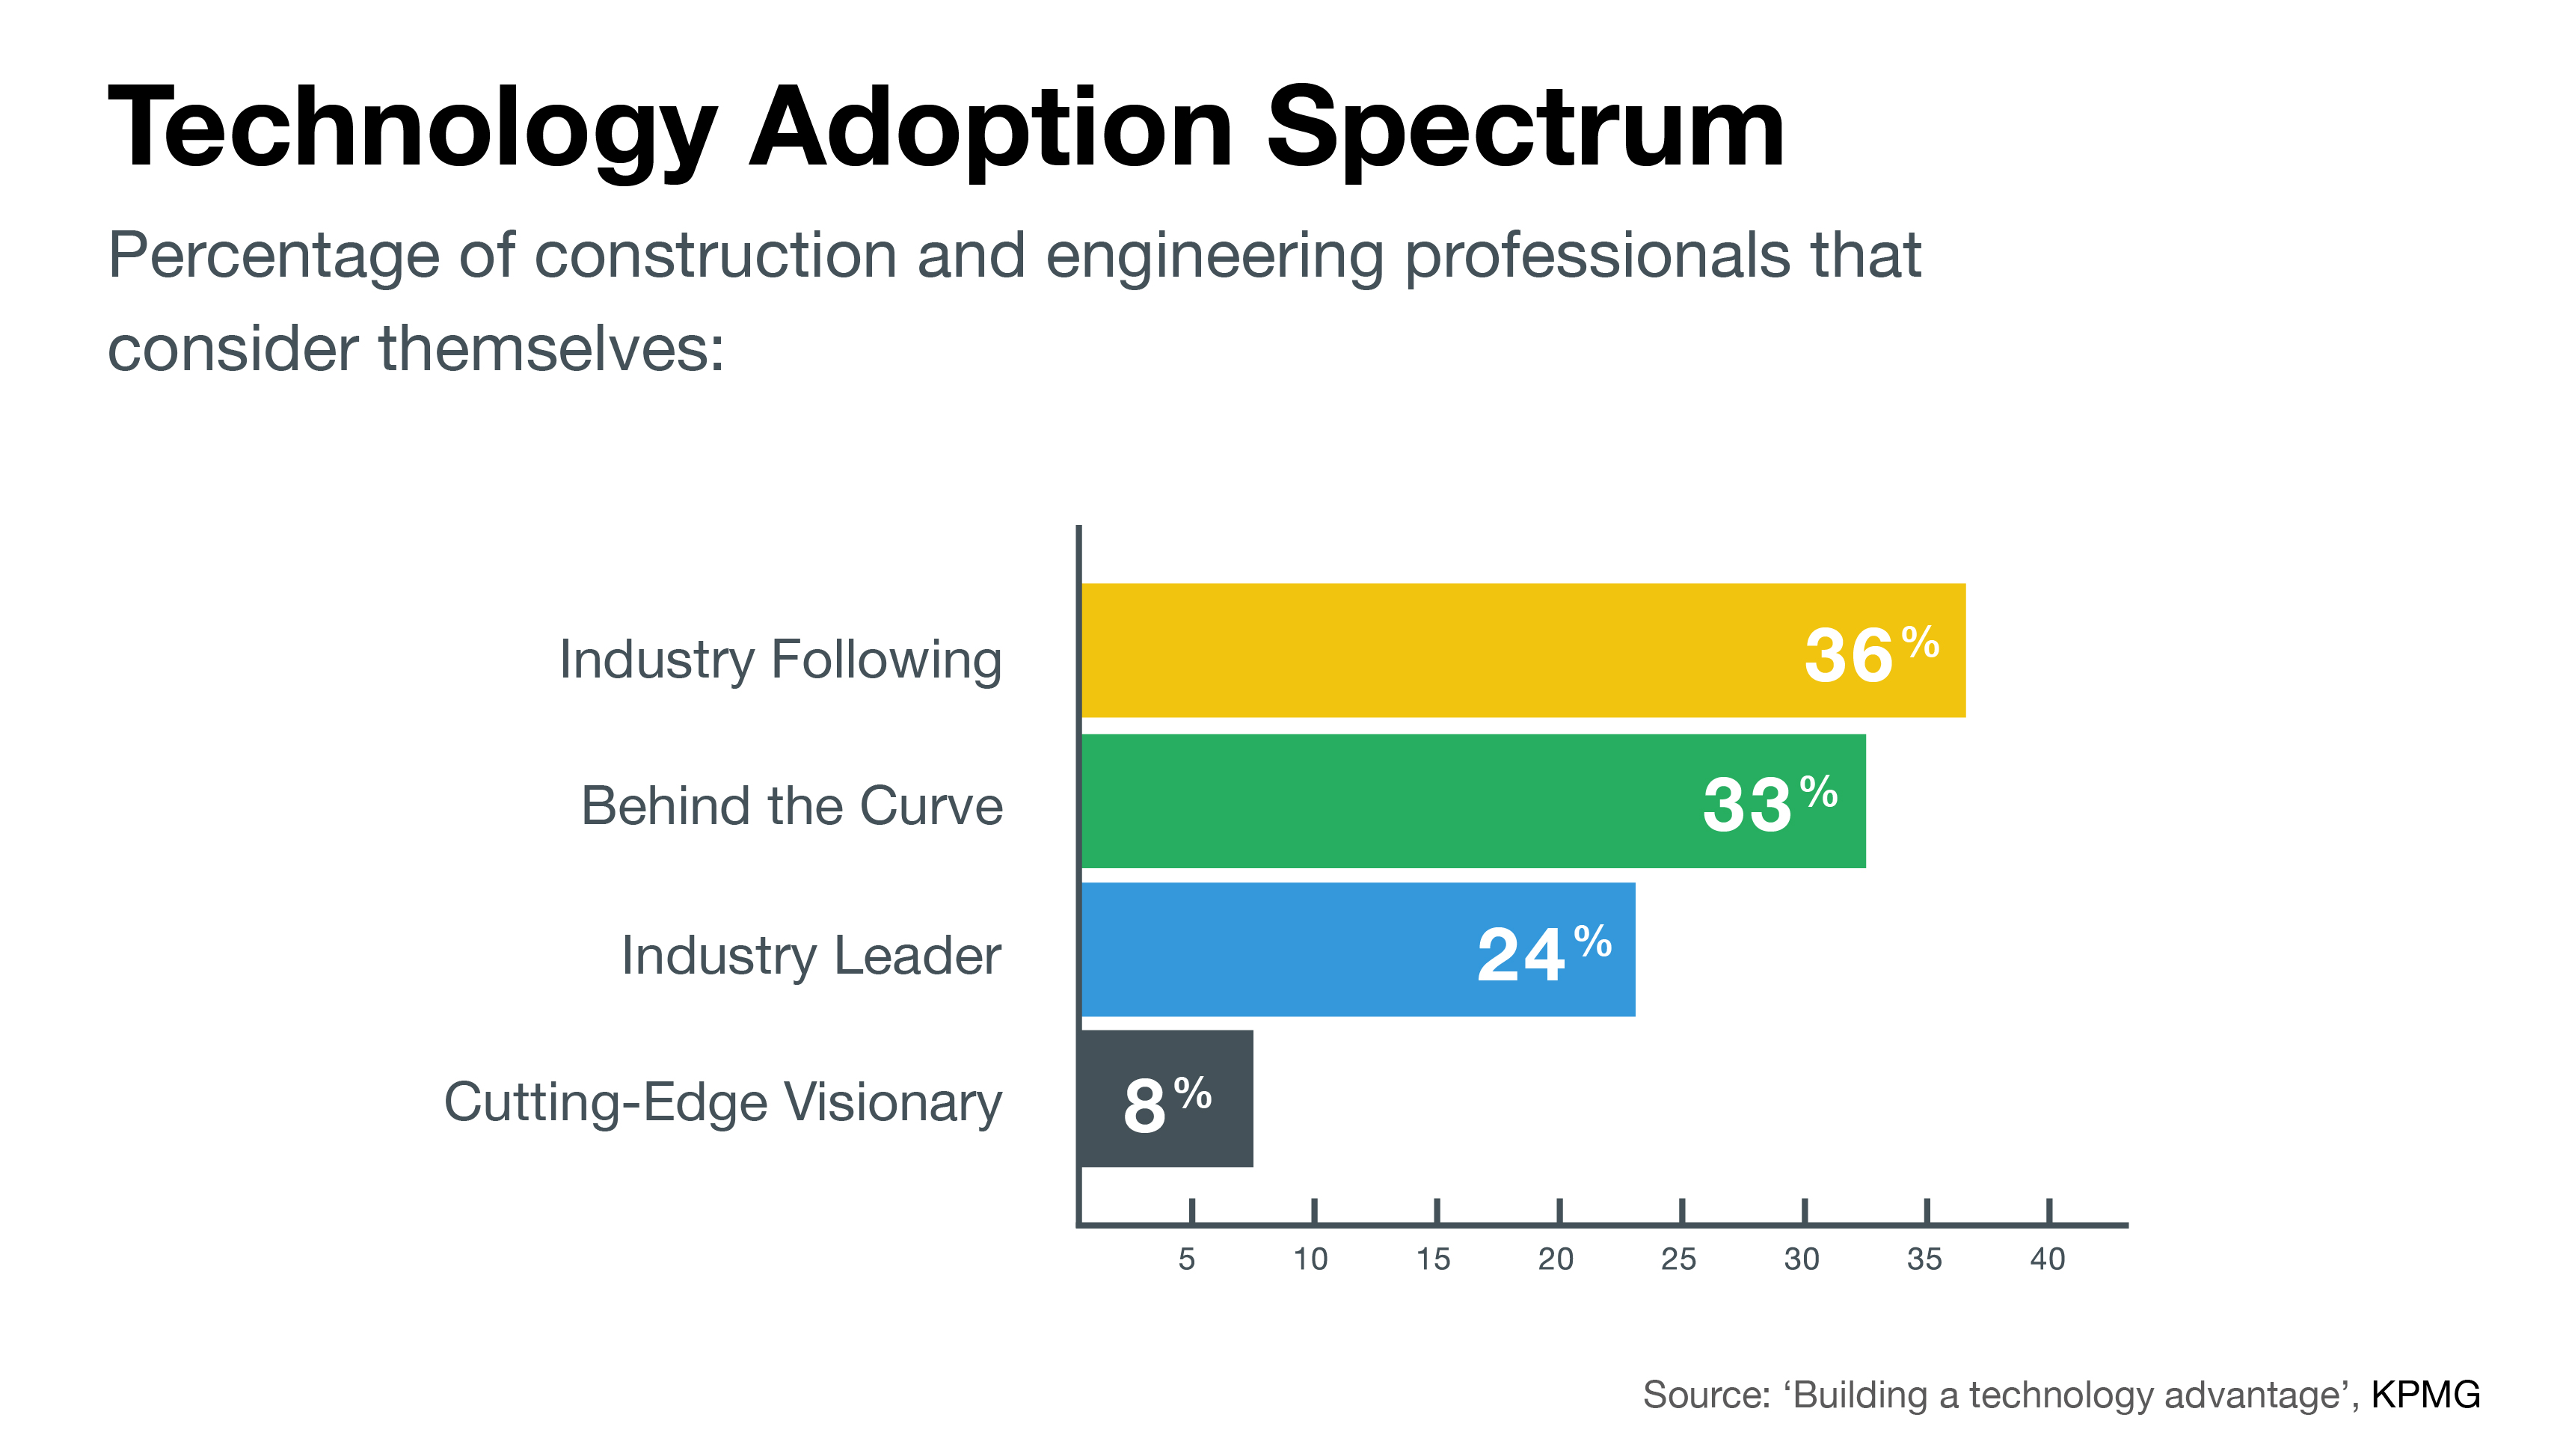 construction and engineering tech adoption spectrum